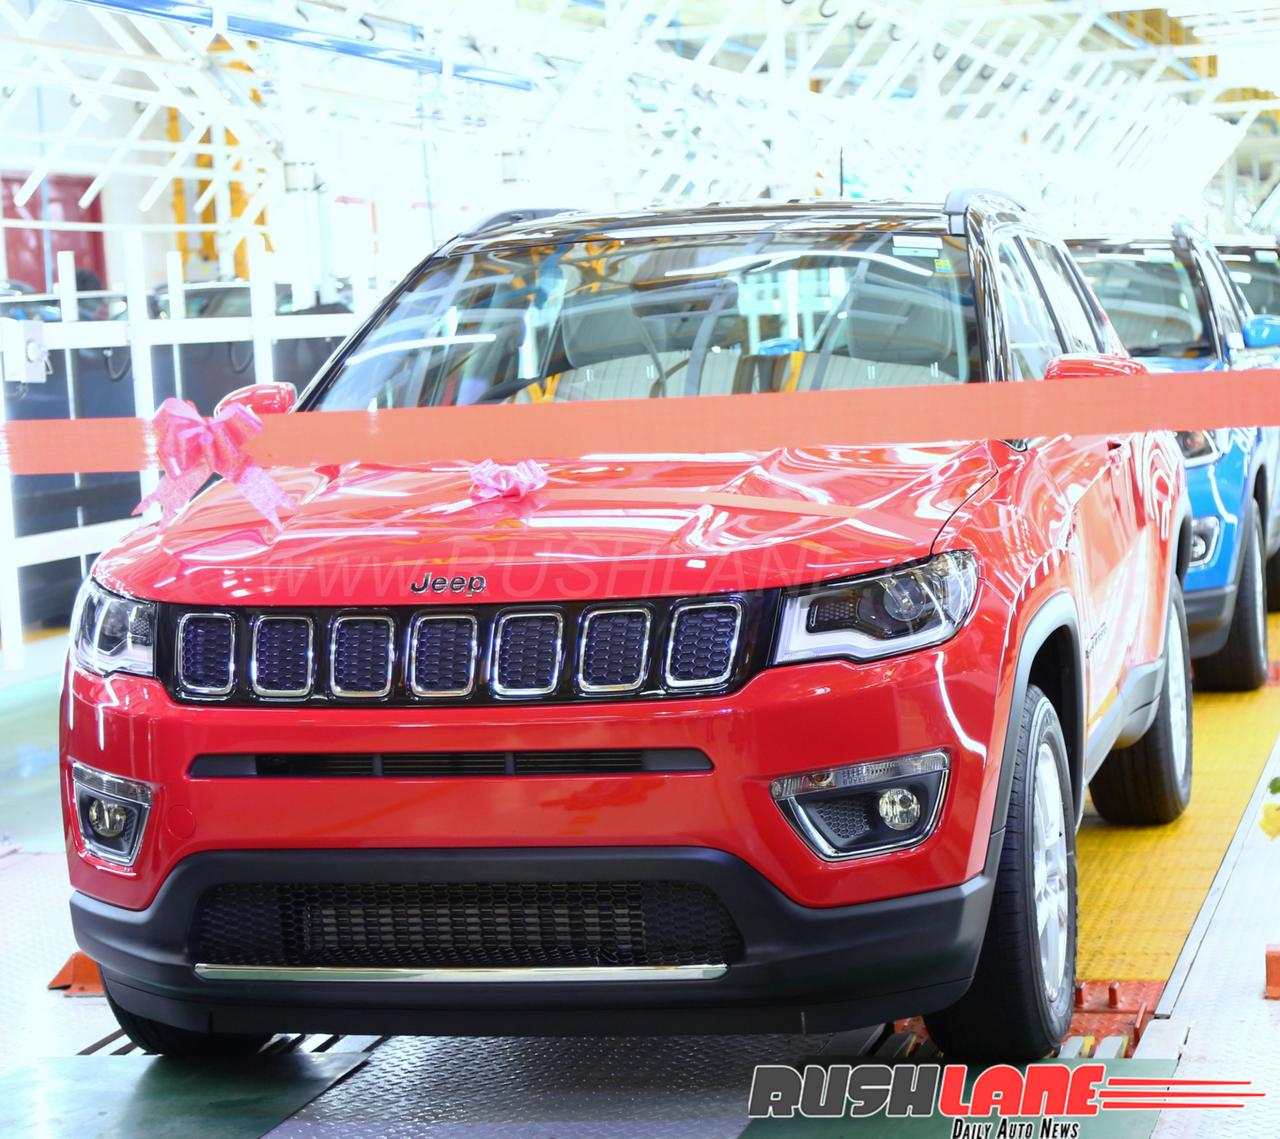 Jeep Compass Used Car: 6k Units In Q1 2018; Nearing 20k In India